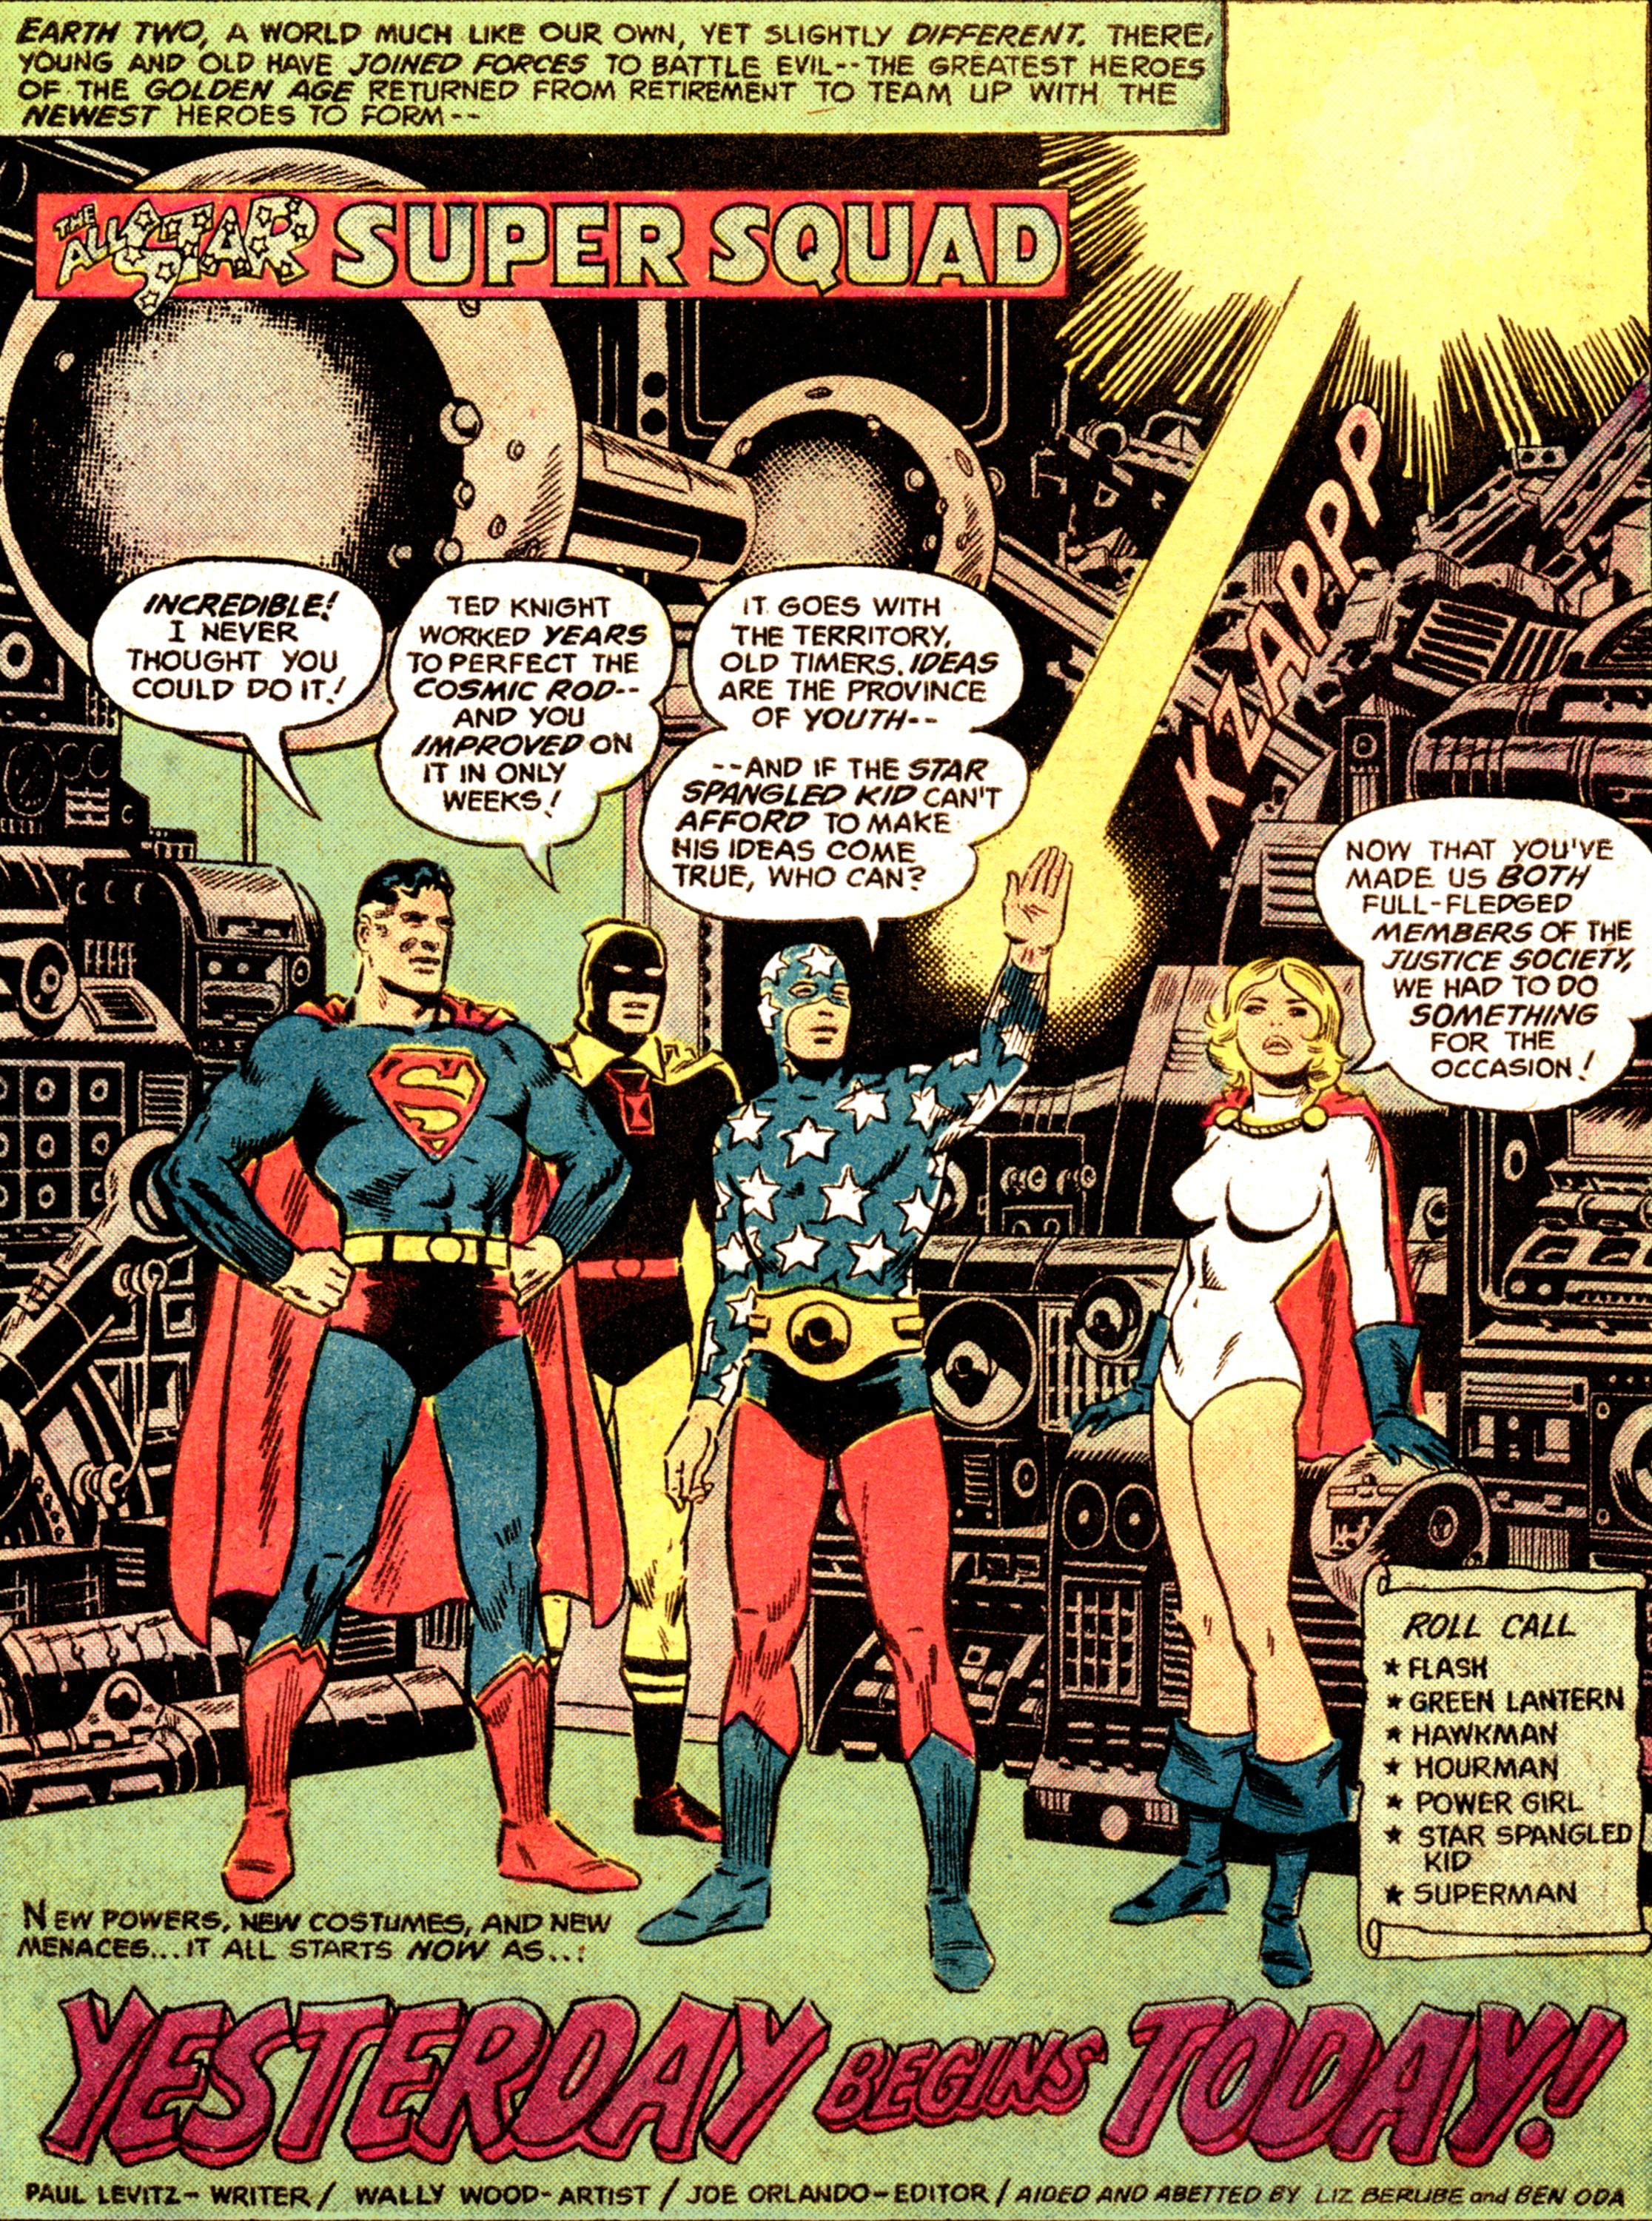 All Star Comics Splash Page Featuring Superman Hourman And The Star